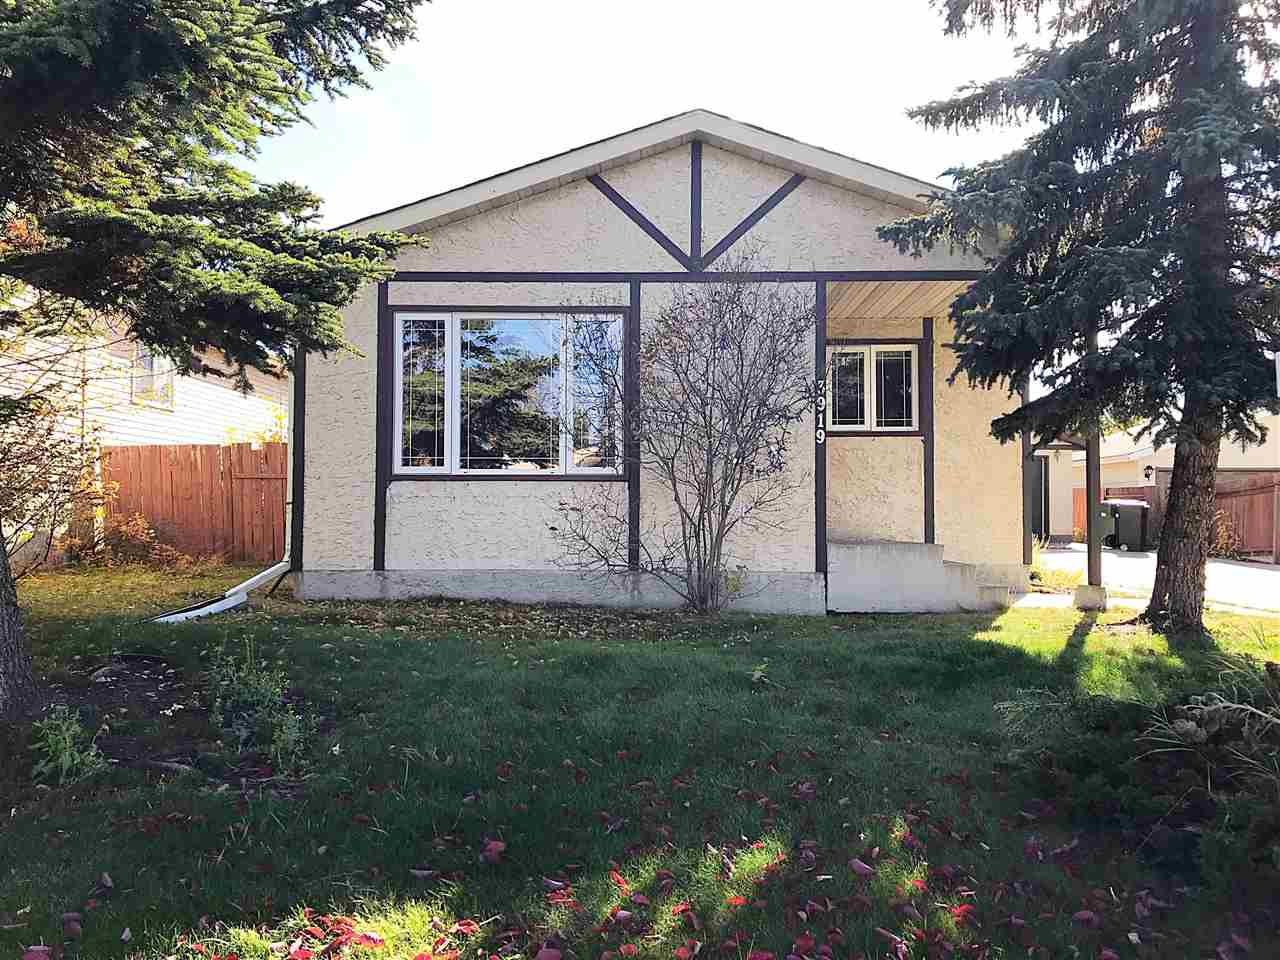 A great start! Located in popular Southpark-walking distance to the Leduc Recreation Center, Park N Ride, shopping, schools, parks and more. This unique 4 level split offers 3 bed/1 bath & 1,980 total sq.ft. Upon entry you are welcomed by a spacious living room with a large picture window. Hardwood floors carry from the living room through to the dining room. The adjacent eat-in kitchen has ceramic tile floors and oak cabinetry with upgraded hardware. Hardwood floors continue upstairs & through to 3 comfortable bedrooms. A 4pc bath completes this level. The 3rd level boasts a spacious family room with:vinyl windows, drop ceiling and pot lights, hardwood floors, wood burning stove, and is set up for a wet bar with 3 sets of upper oak cabinets and roughed in plumbing. The basement is partly finished with framing and drywall for two rooms that could be used for storage or an office. There is a large crawl space for added storage. A shared driveway leads to a 24 X 24 detached garage and fully fenced backyard.